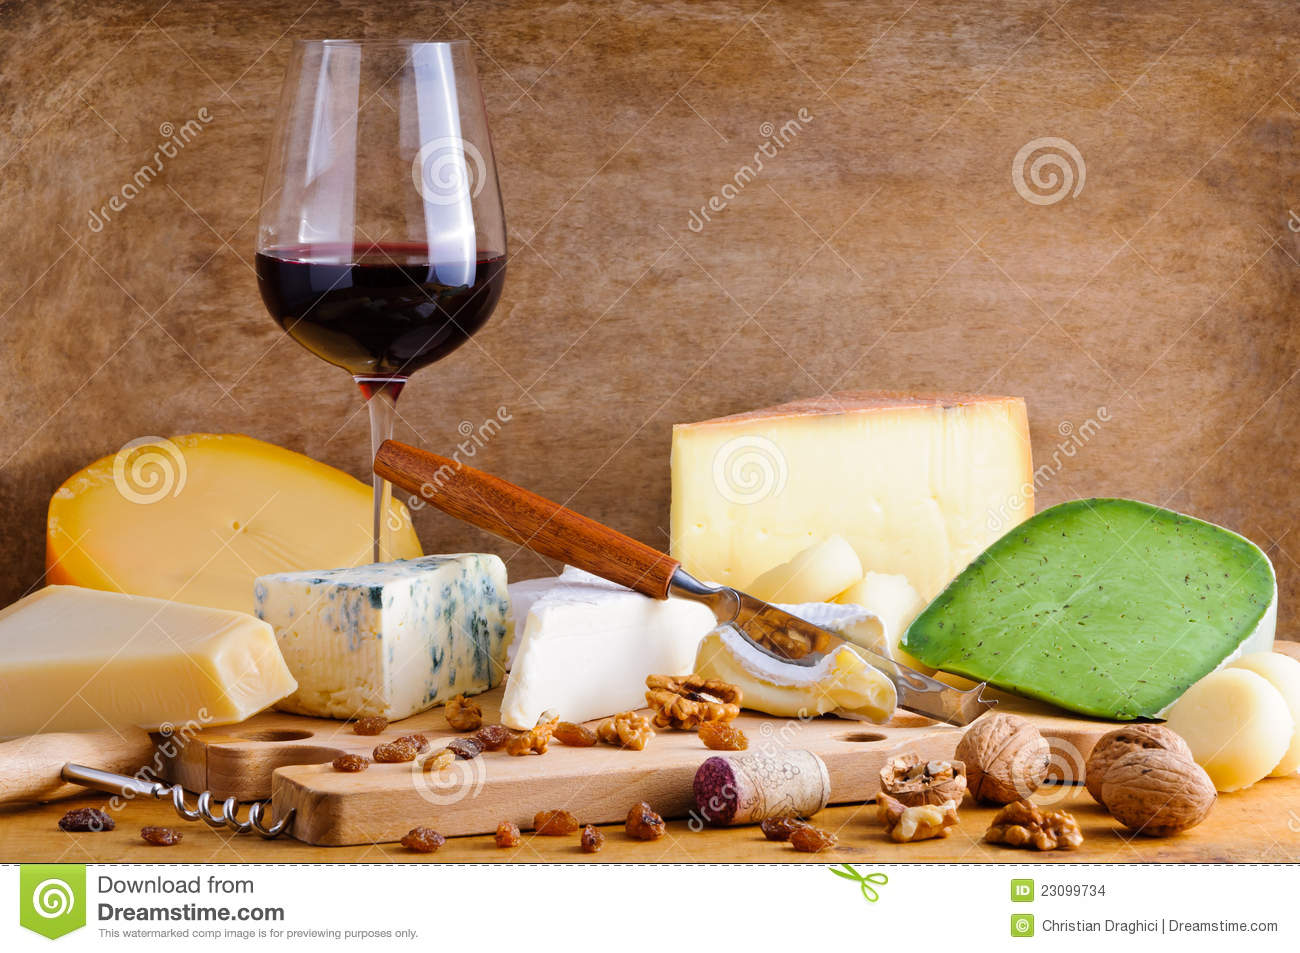 Glass of red wine and cheese plate